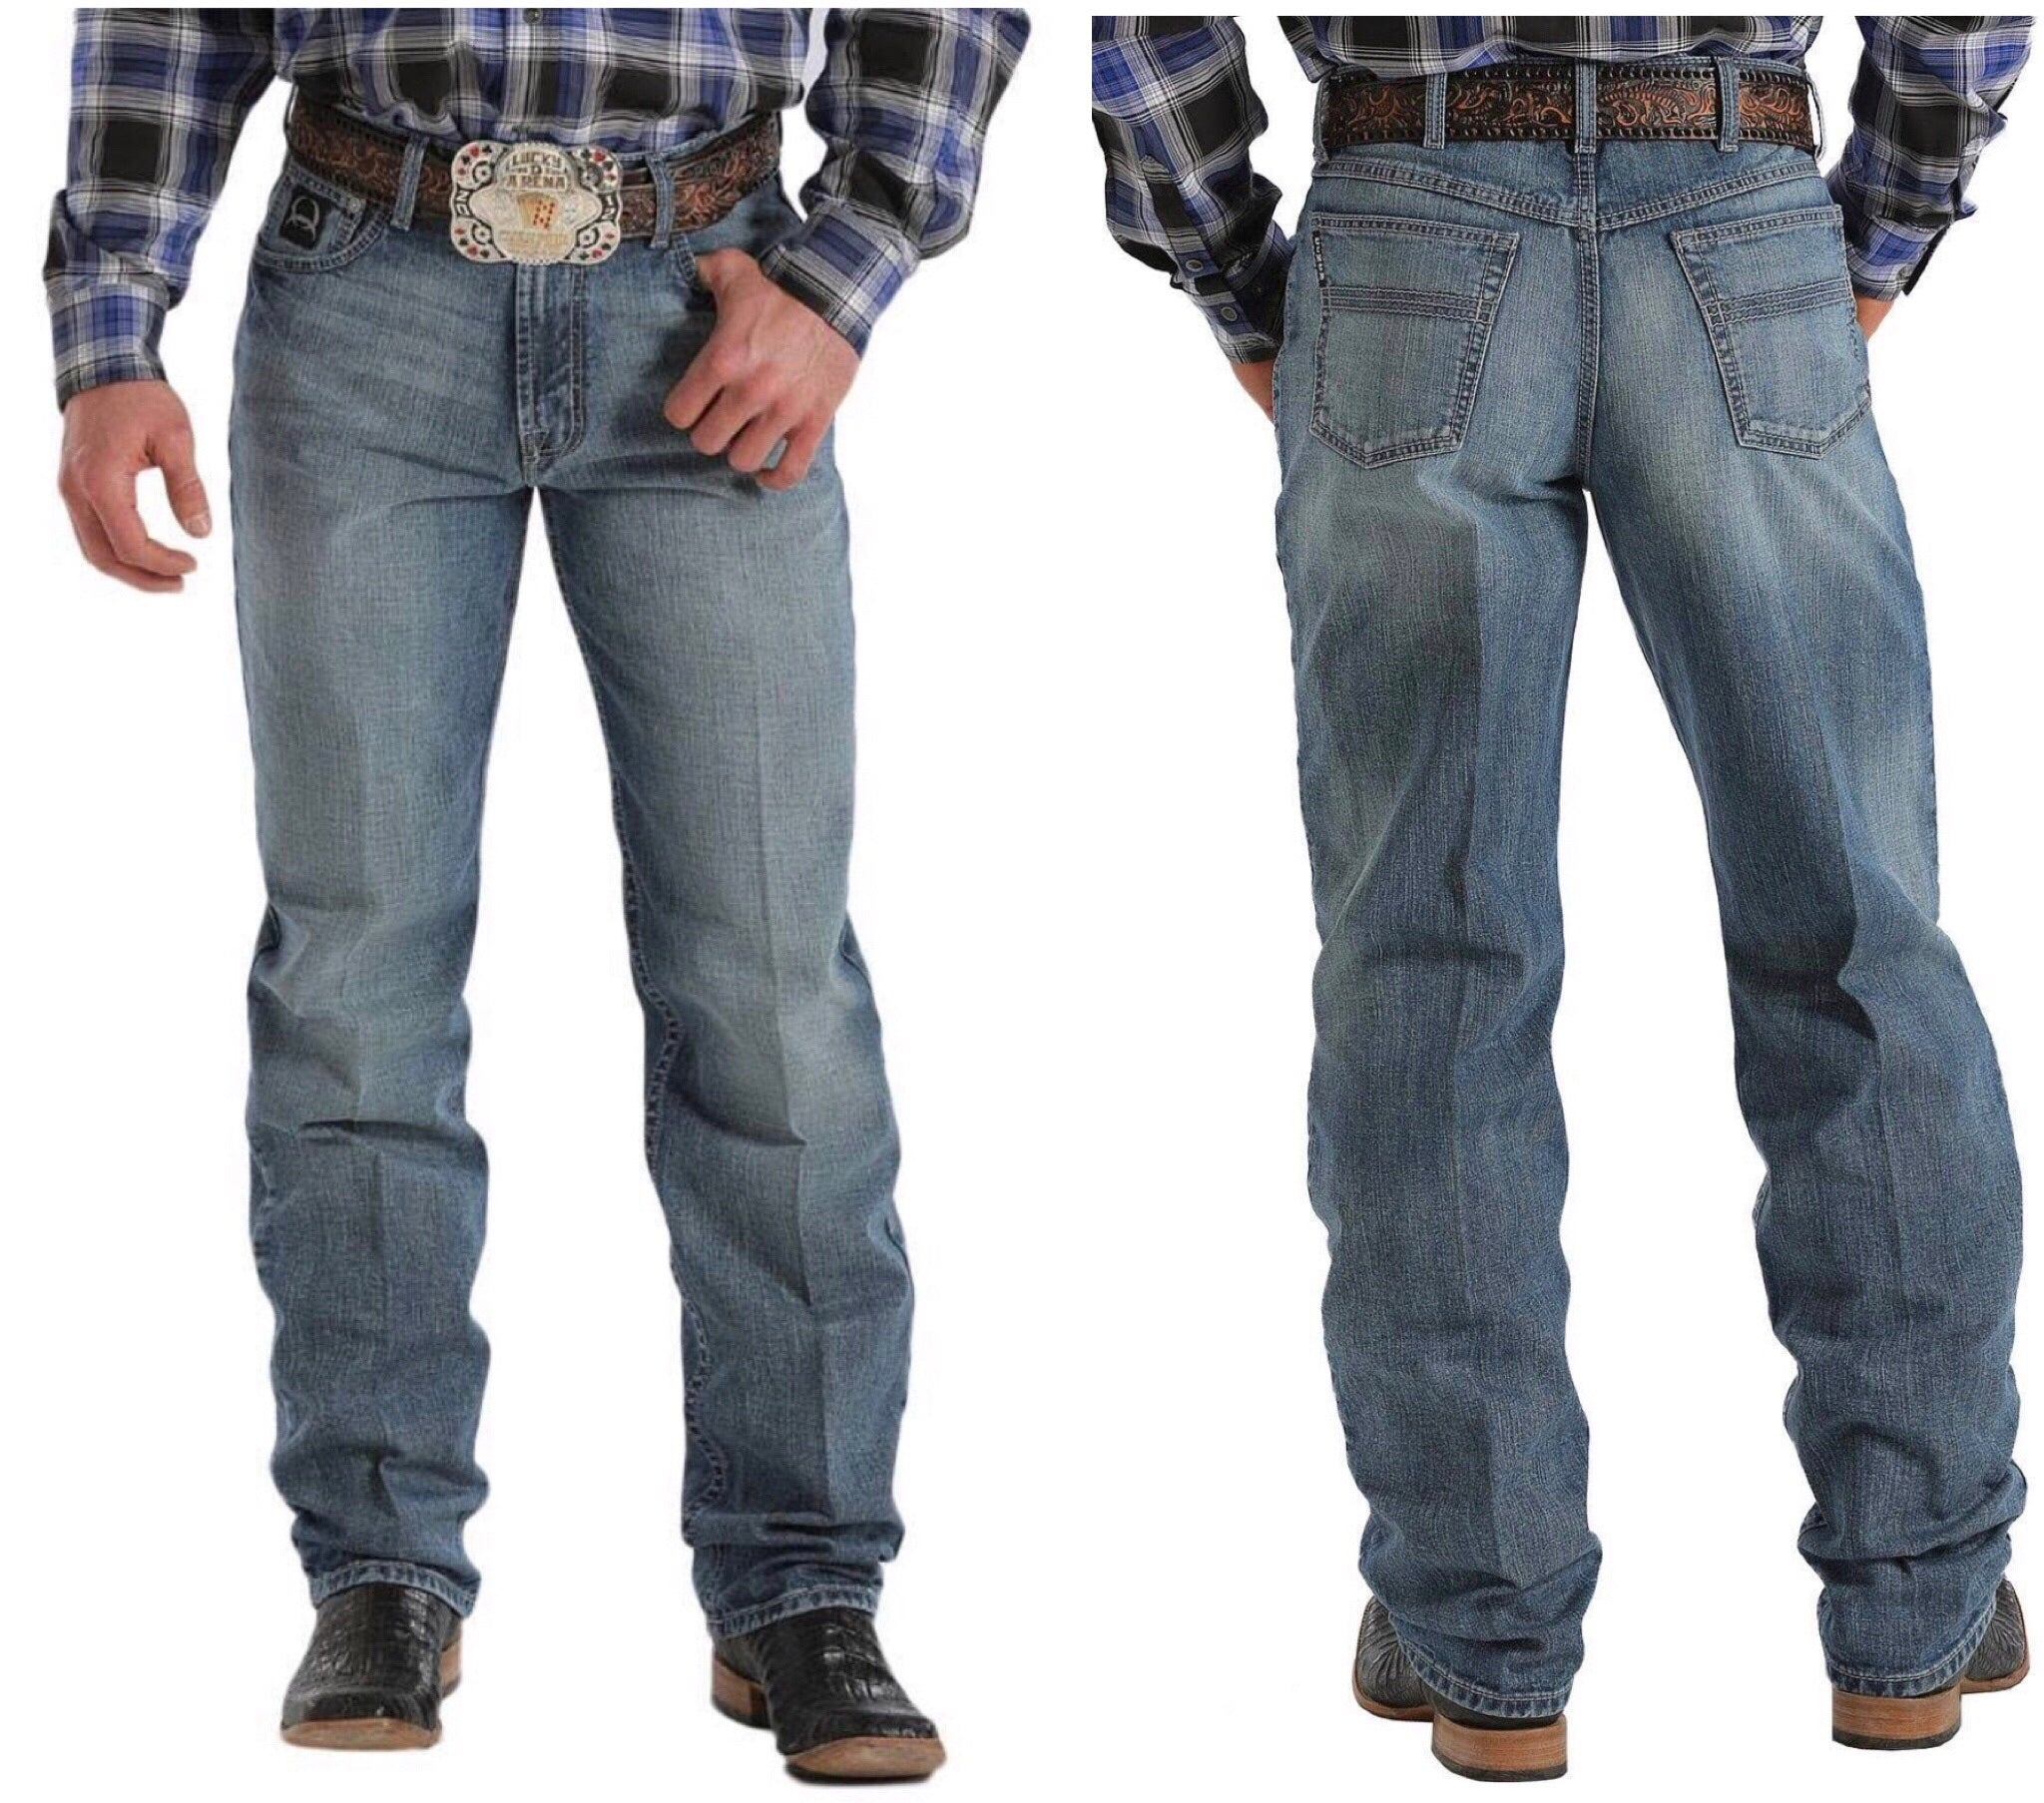 CINCH MENS LOOSE FIT BLACK LABEL 2.0 JEANS - MEDIUM STONEWASH MB90633006